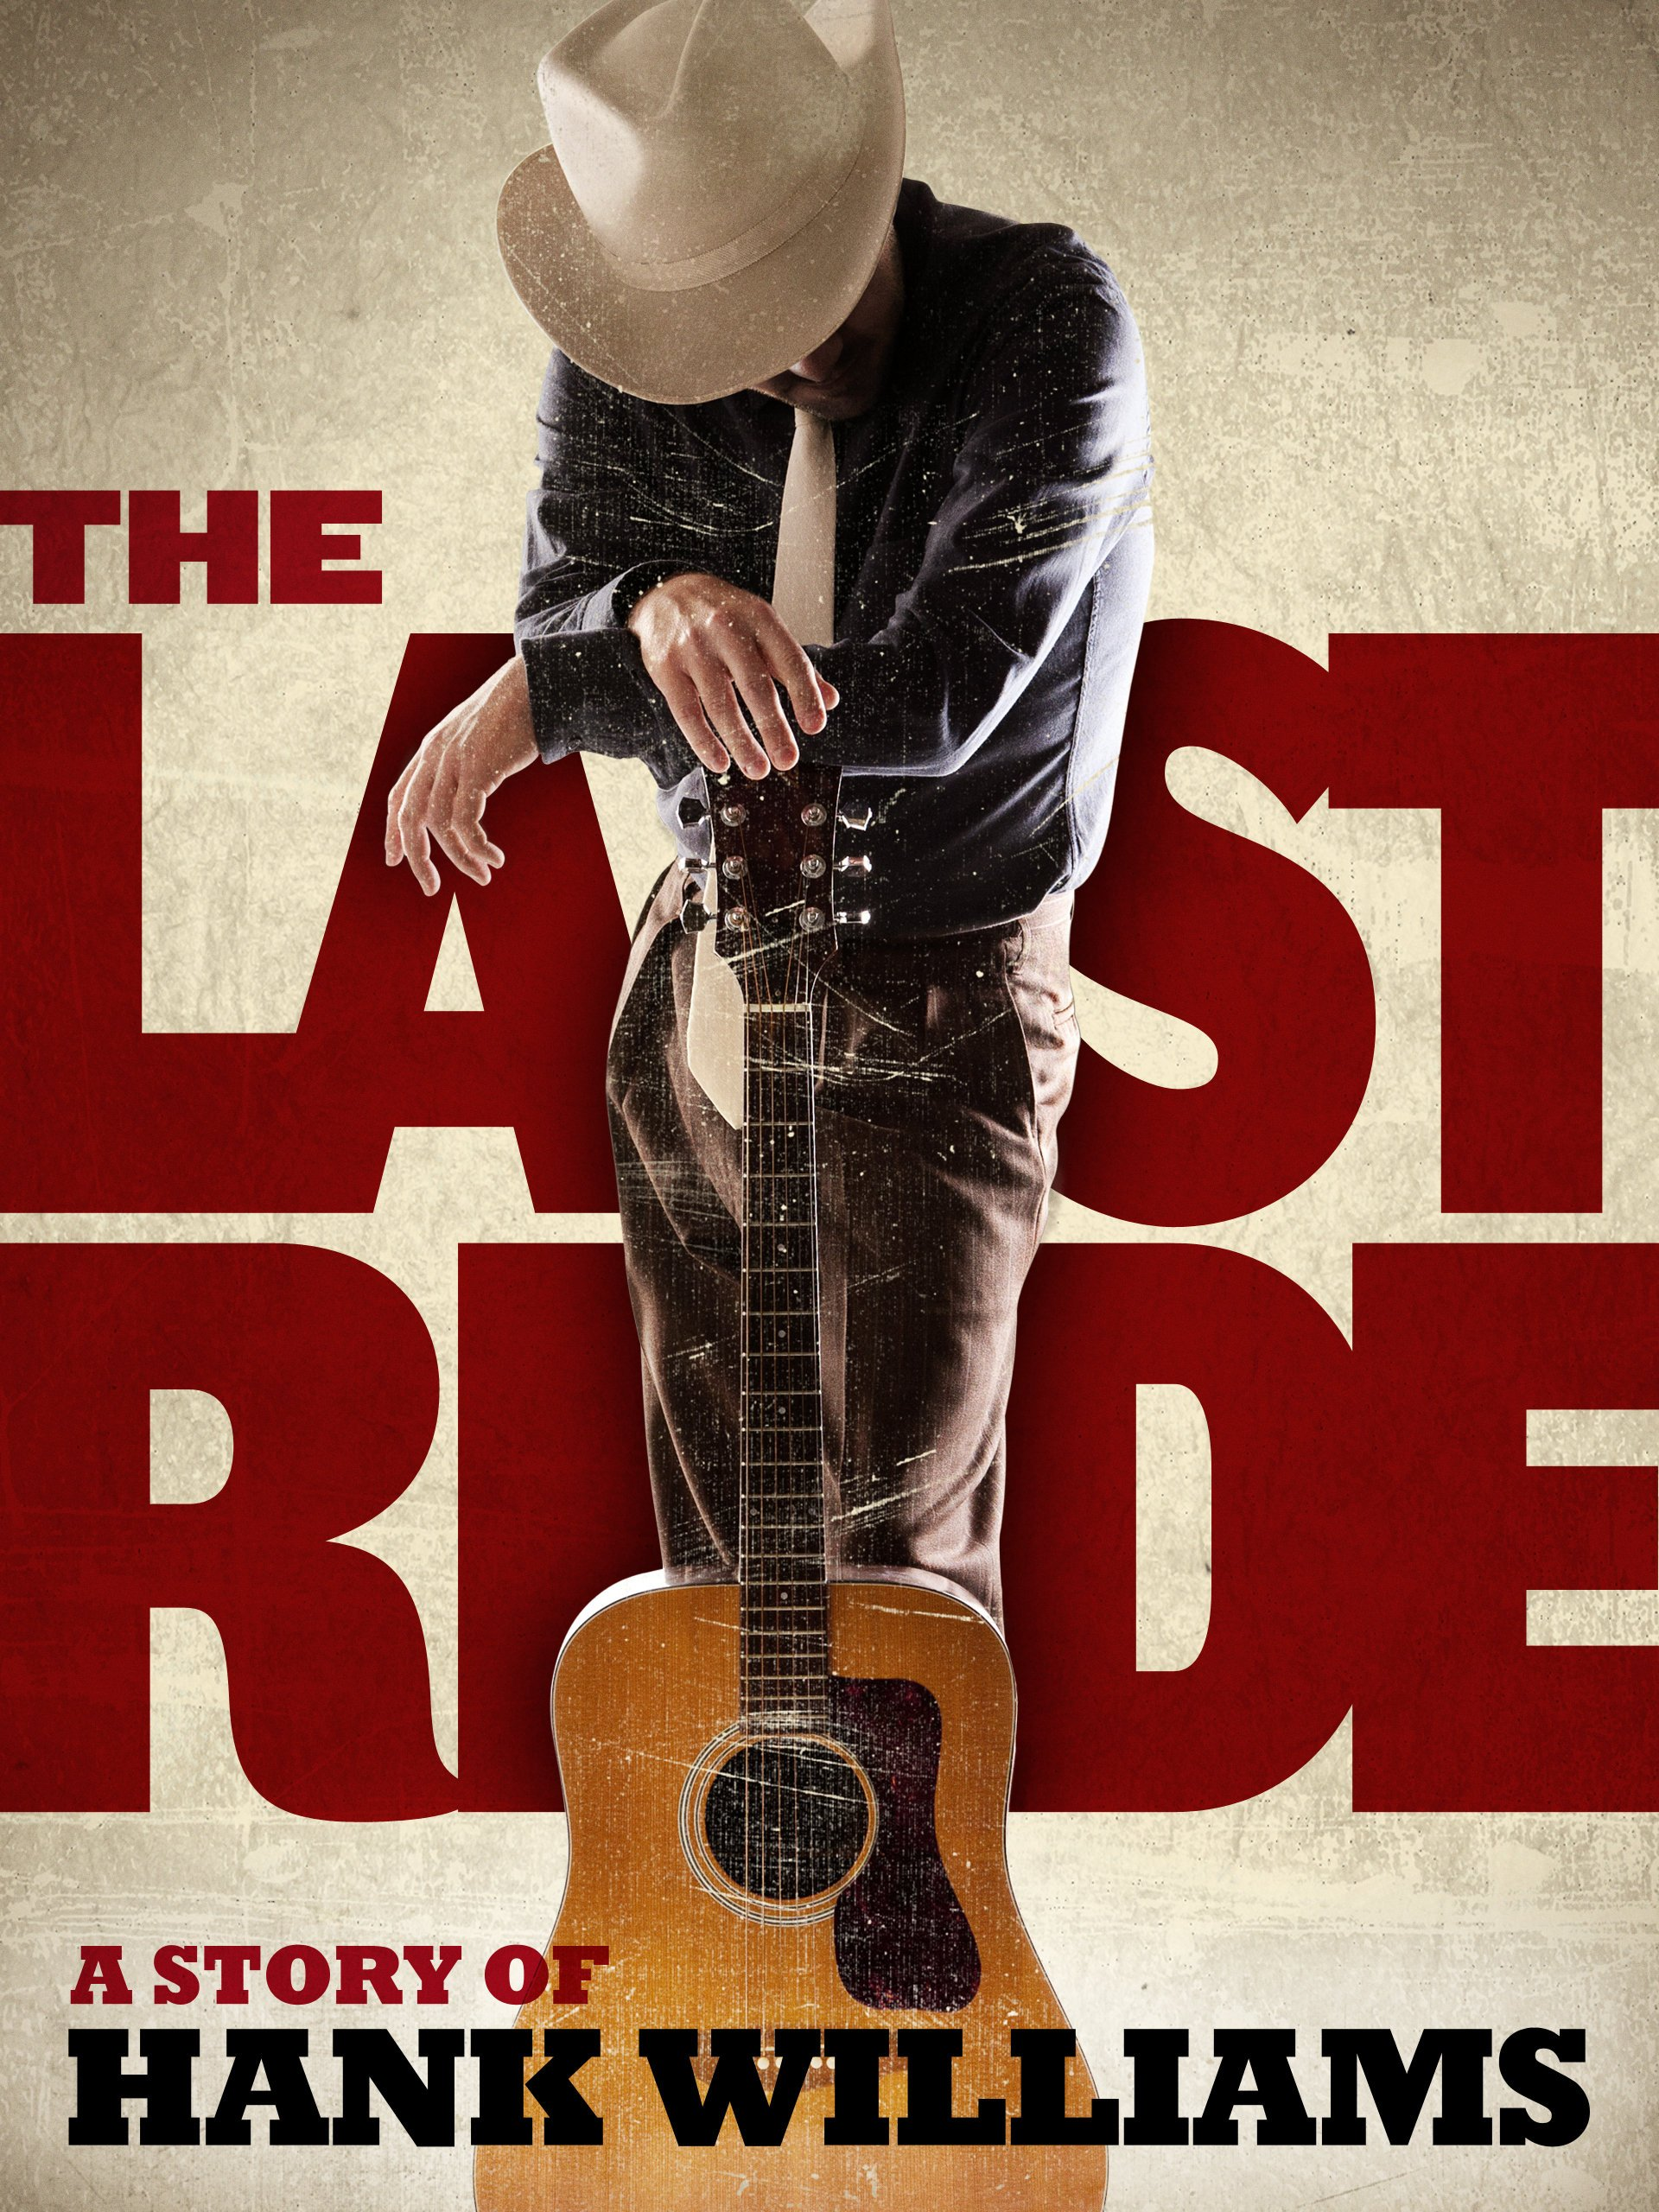 Amazon.com: The Last Ride: A Story of Hank Williams: Henry Thomas, Kaley  Cuoco, Jesse James, Fred Thompson: Amazon Digital Services LLC